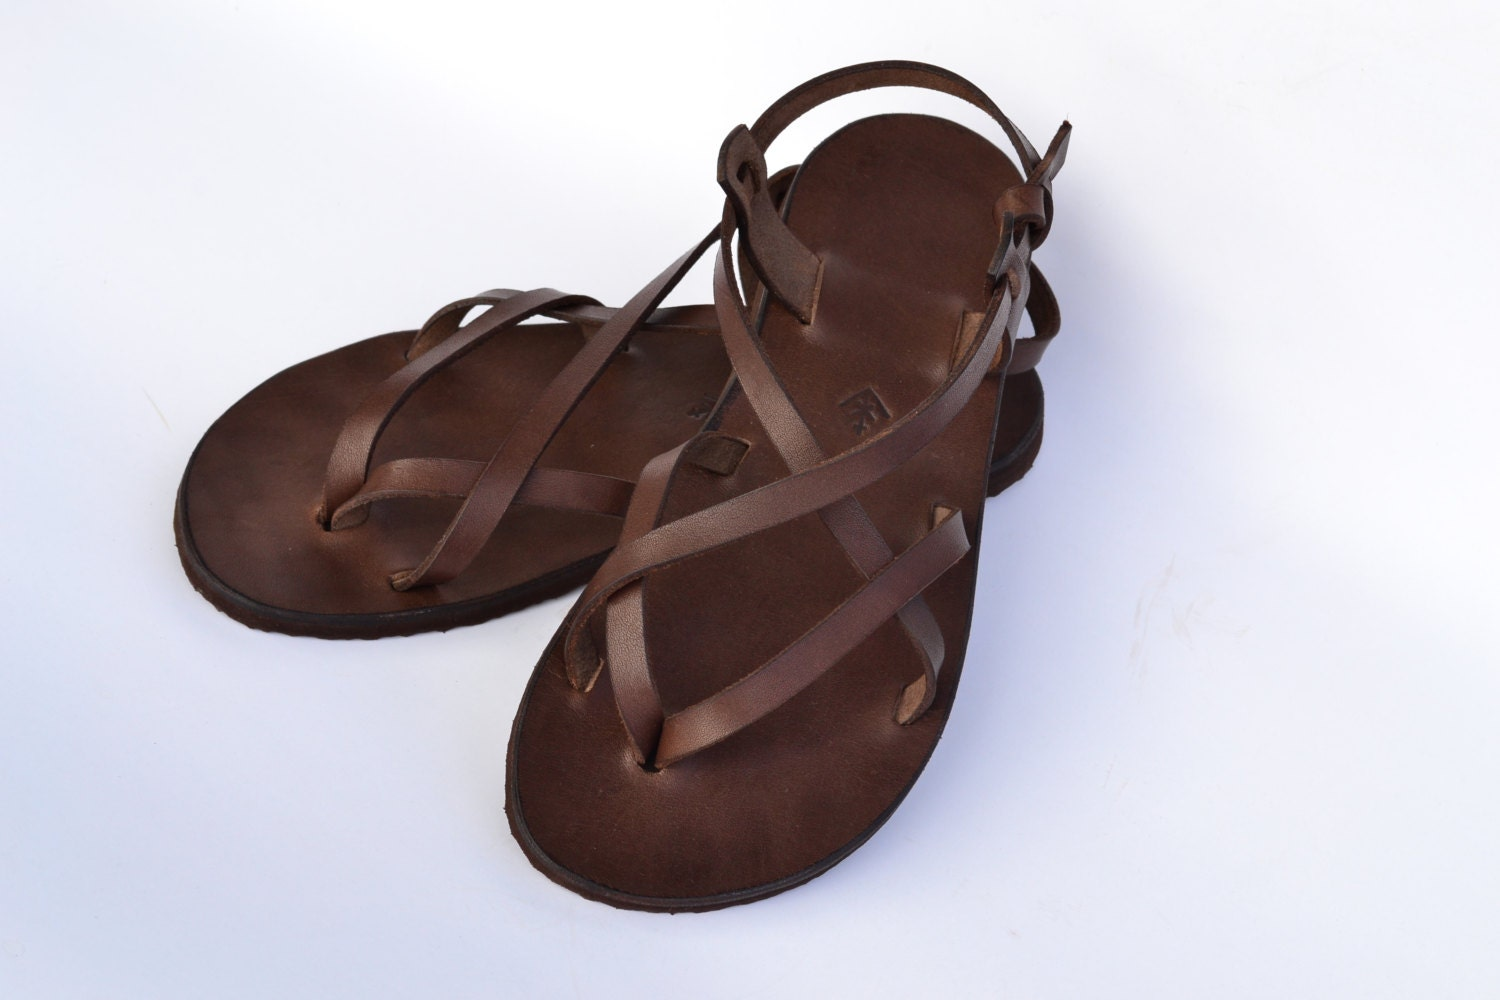 Sale 15 Leather Sandals Women Brown Sandals Barefoot